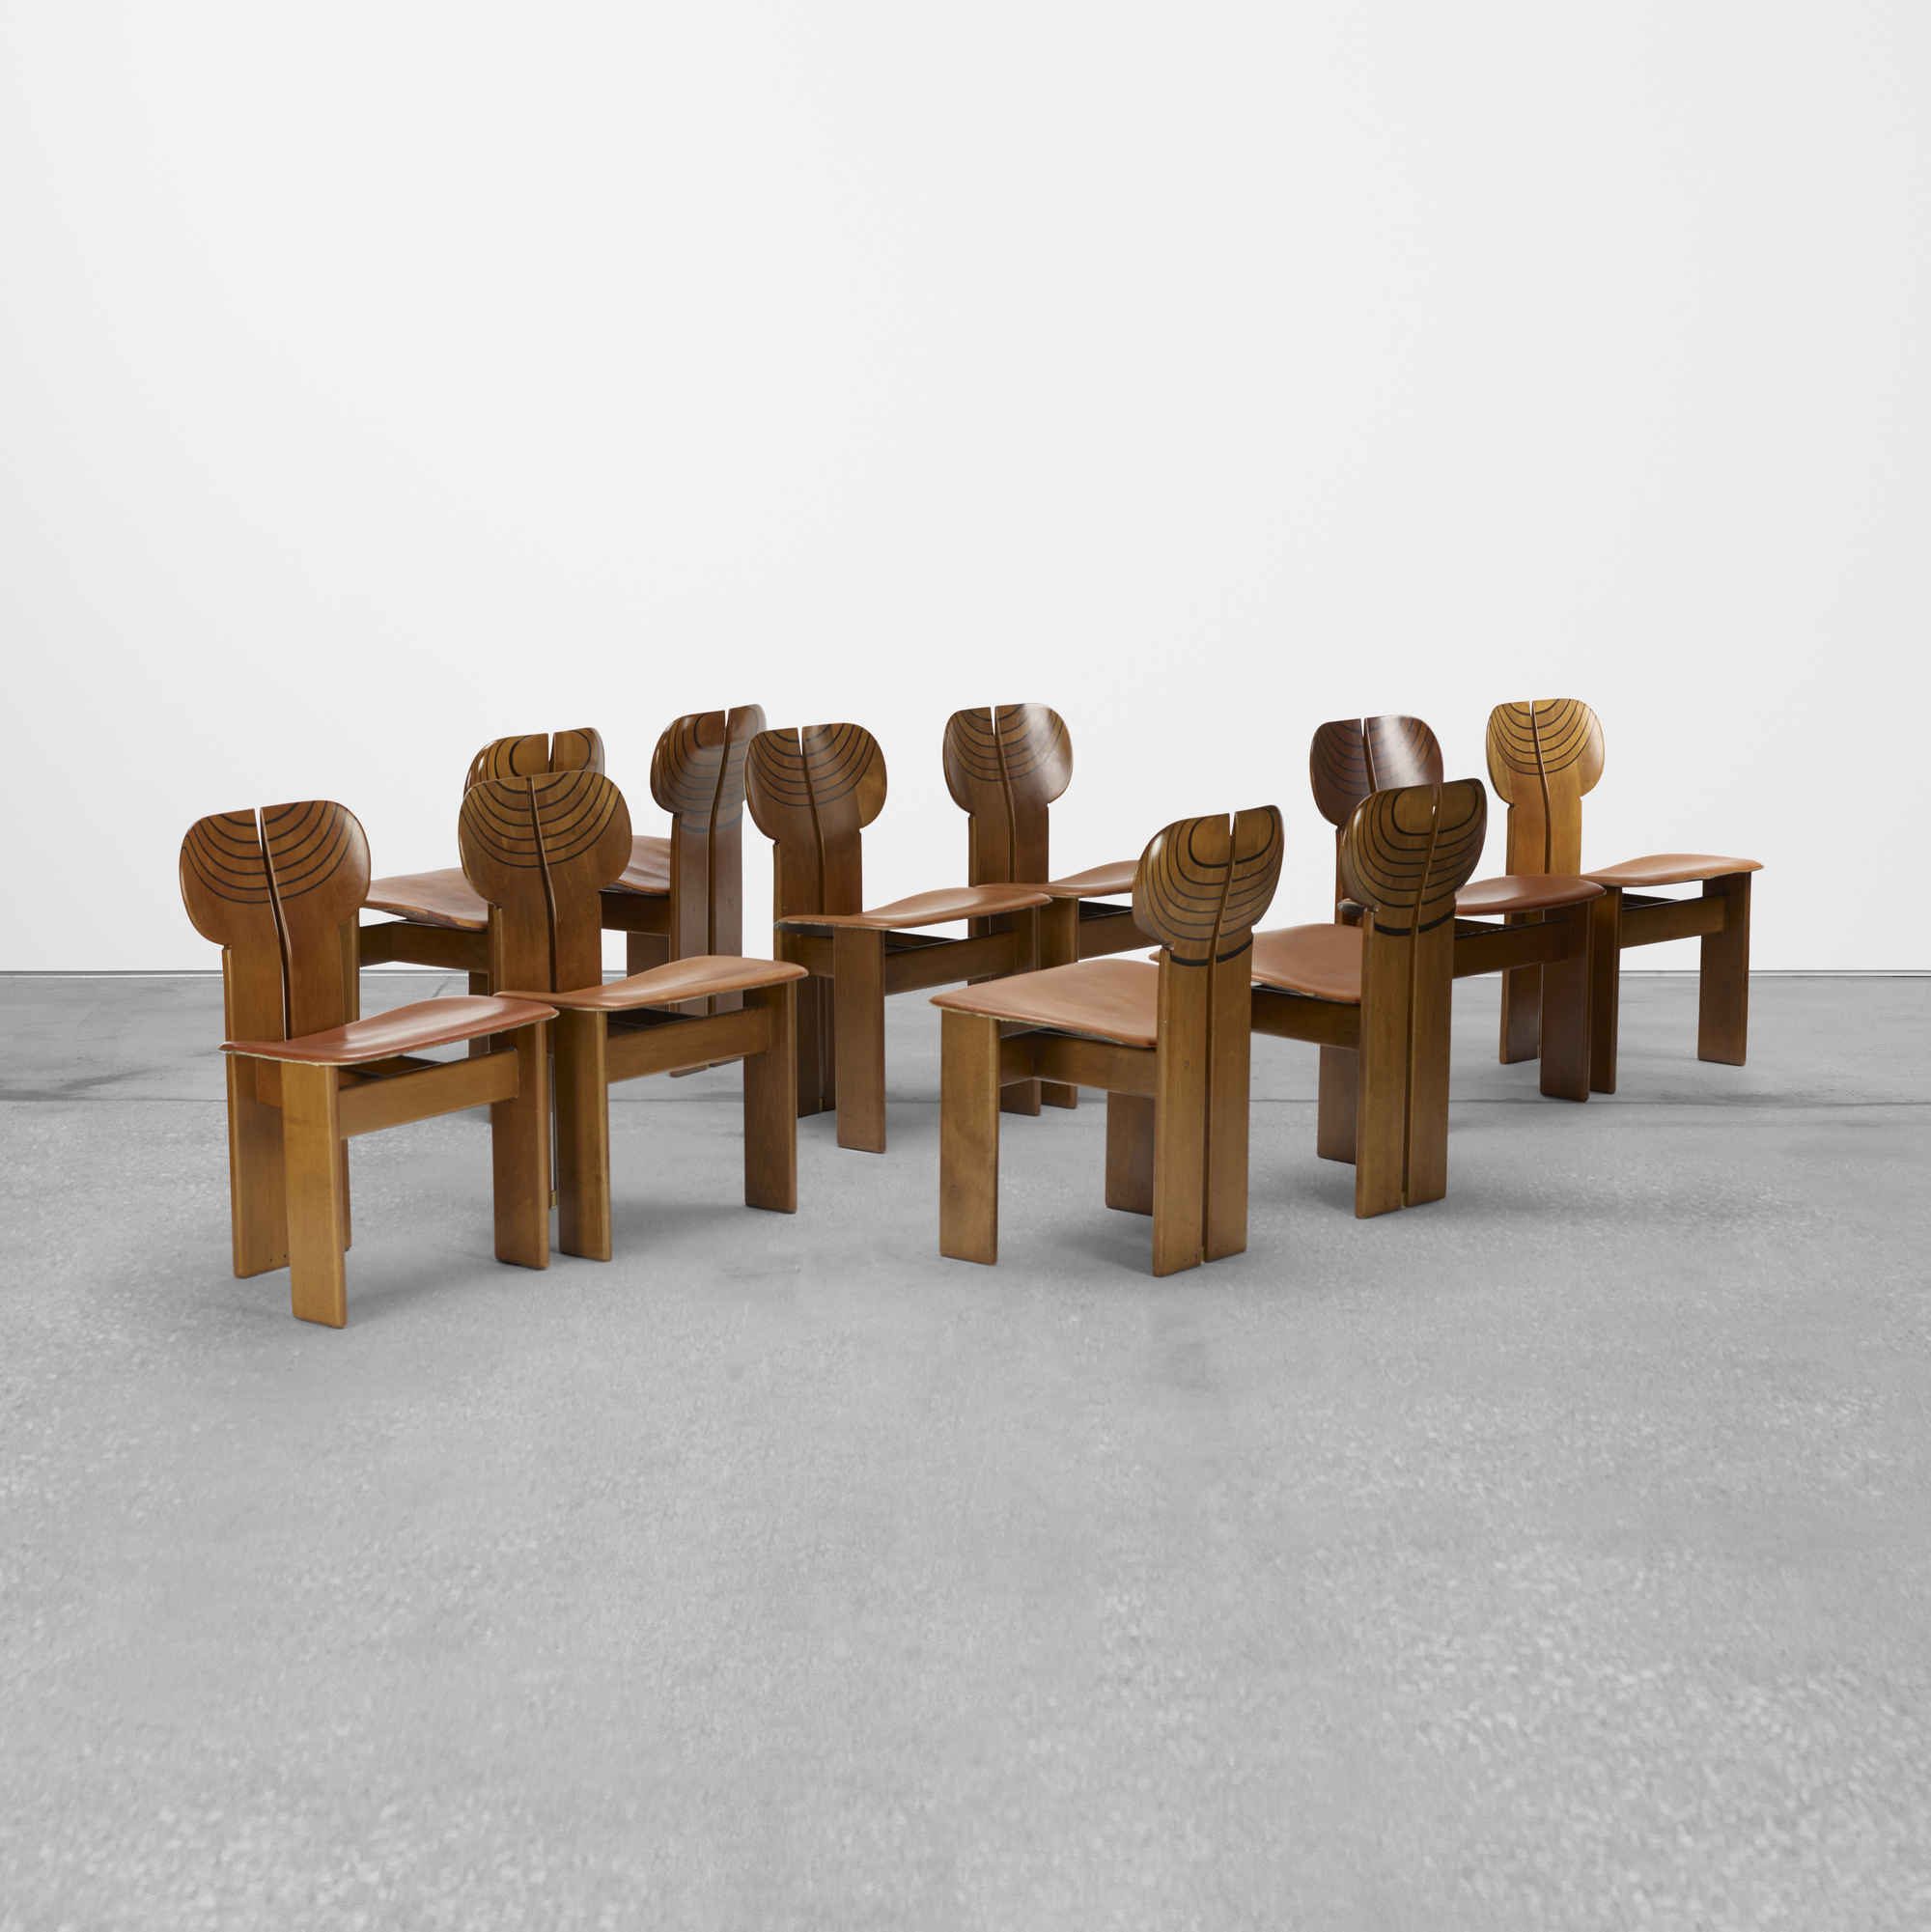 290: Afra and Tobia Scarpa / set of ten Africa chairs from the Artona series (1 of 3)